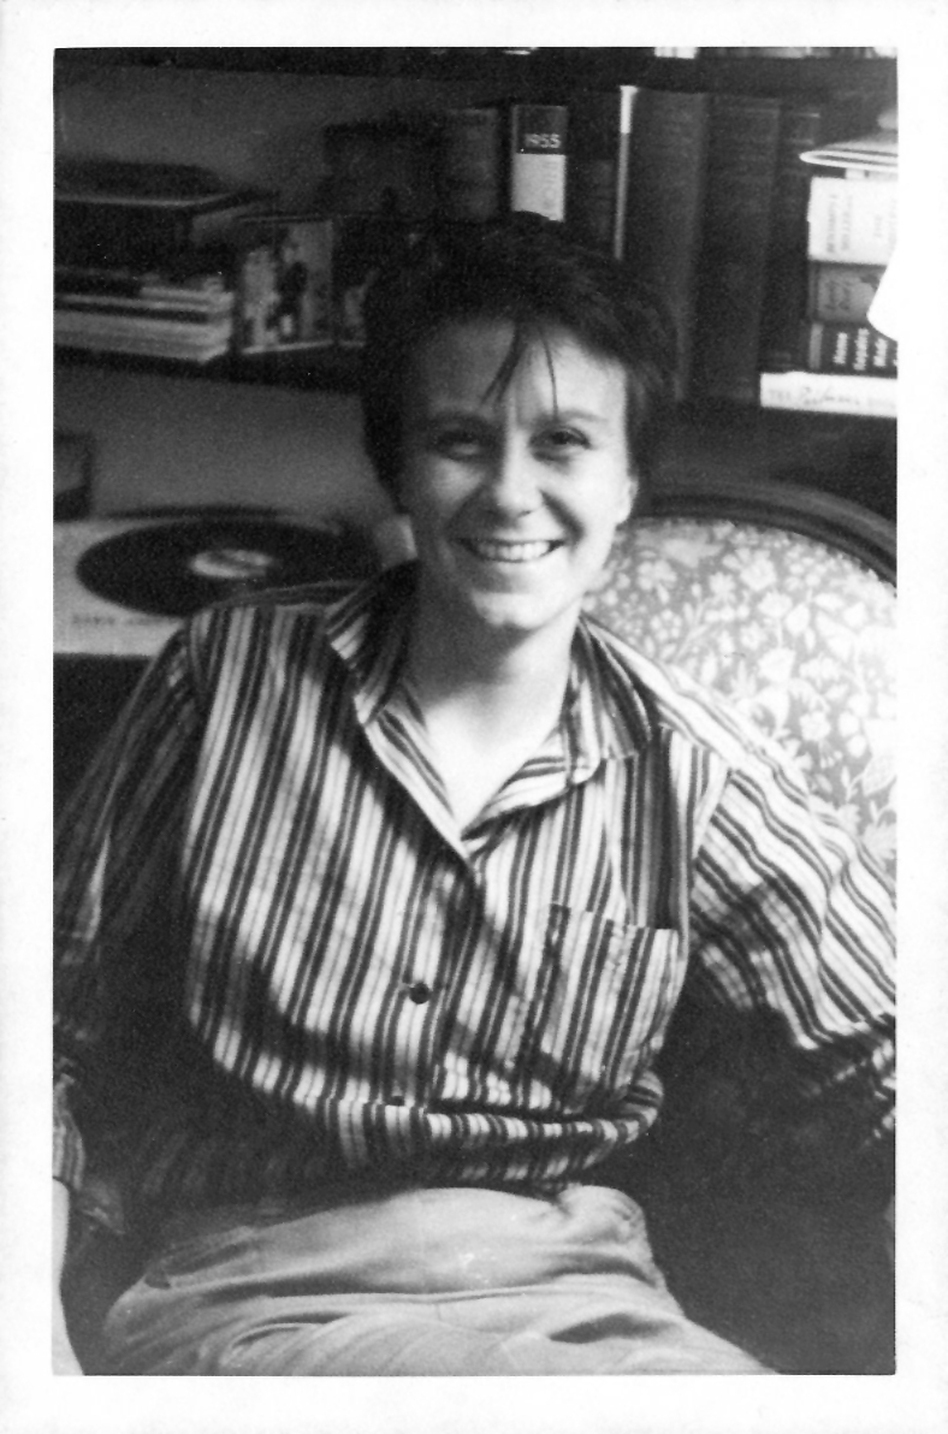 Harper Lee's friend Michael Brown took this picture of the author in October 1957, the same month she signed with publisher J.B. Lippincott. (Michael Brown/Courtesy of Columbia University)